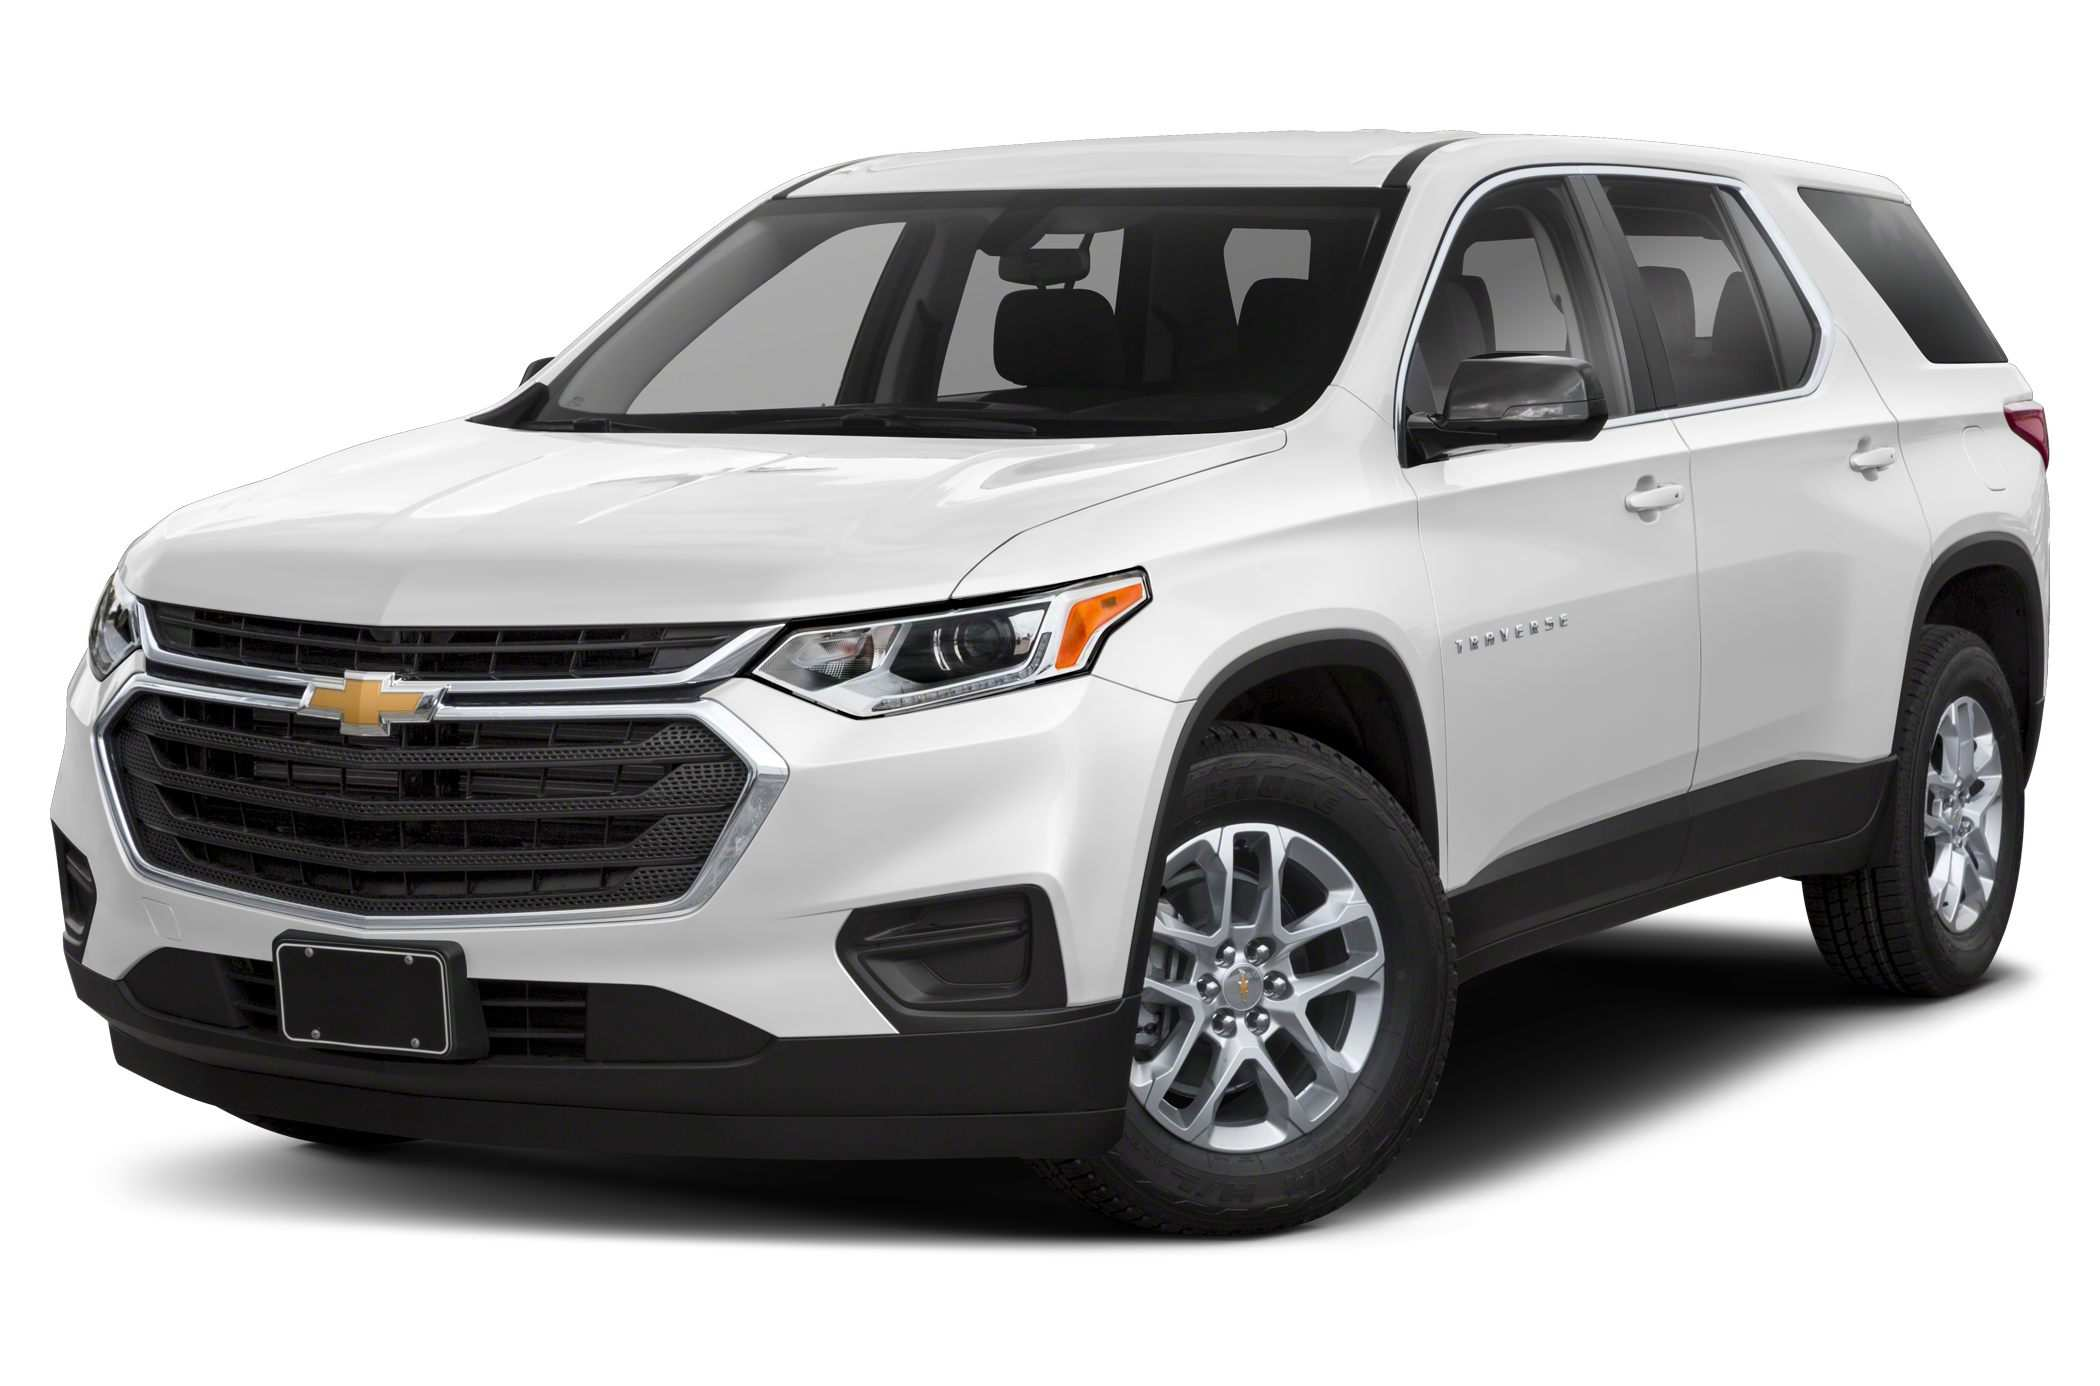 87 New Chevrolet Traverse 2020 Price Design And Review